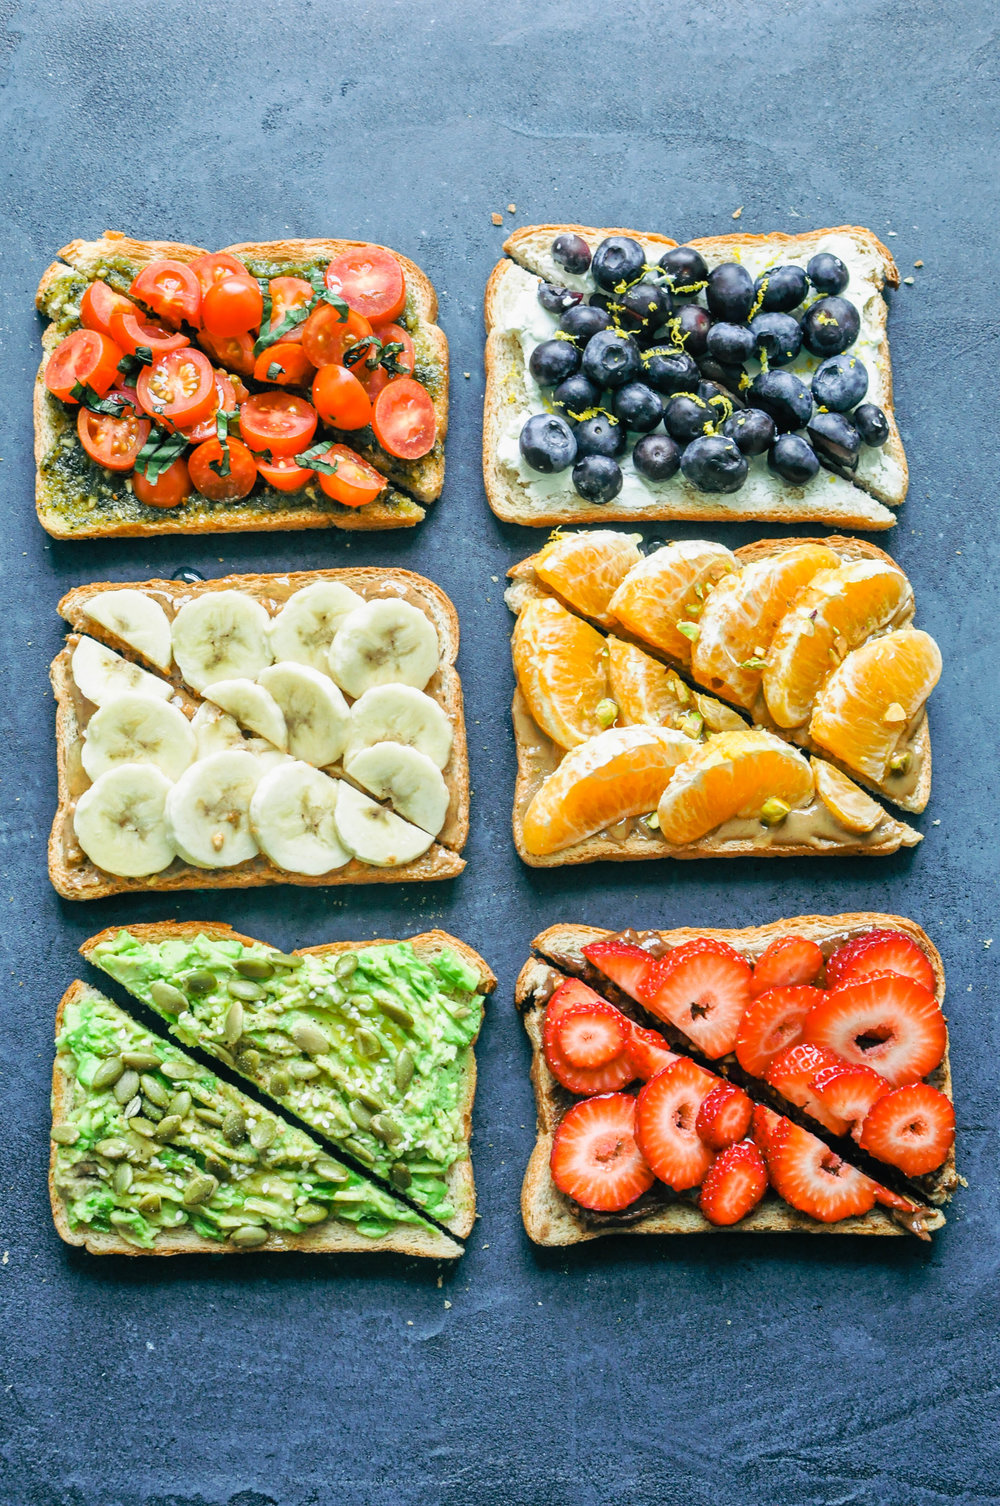 6 kinds of toast! Tomato & pesto, almond butter & banana, avocado & pepitas, goat cheese & blueberry, sunflower seed butter & oranges, chocolate spread & strawberries.